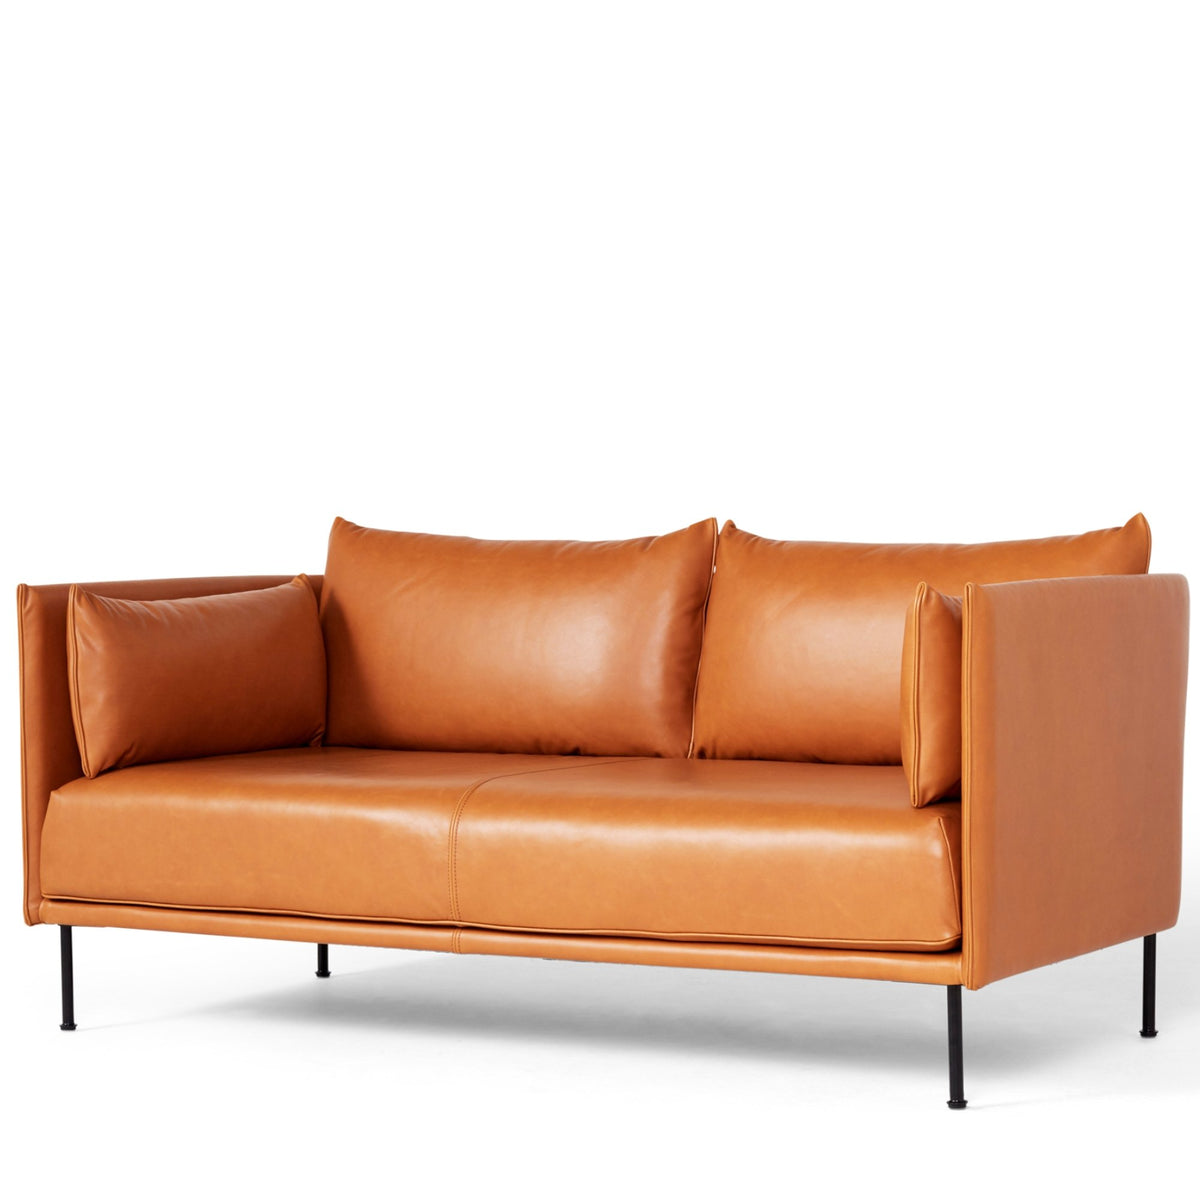 HAY Office Silhouette Sofa 2 Seater - Steel Leg Silk Leather